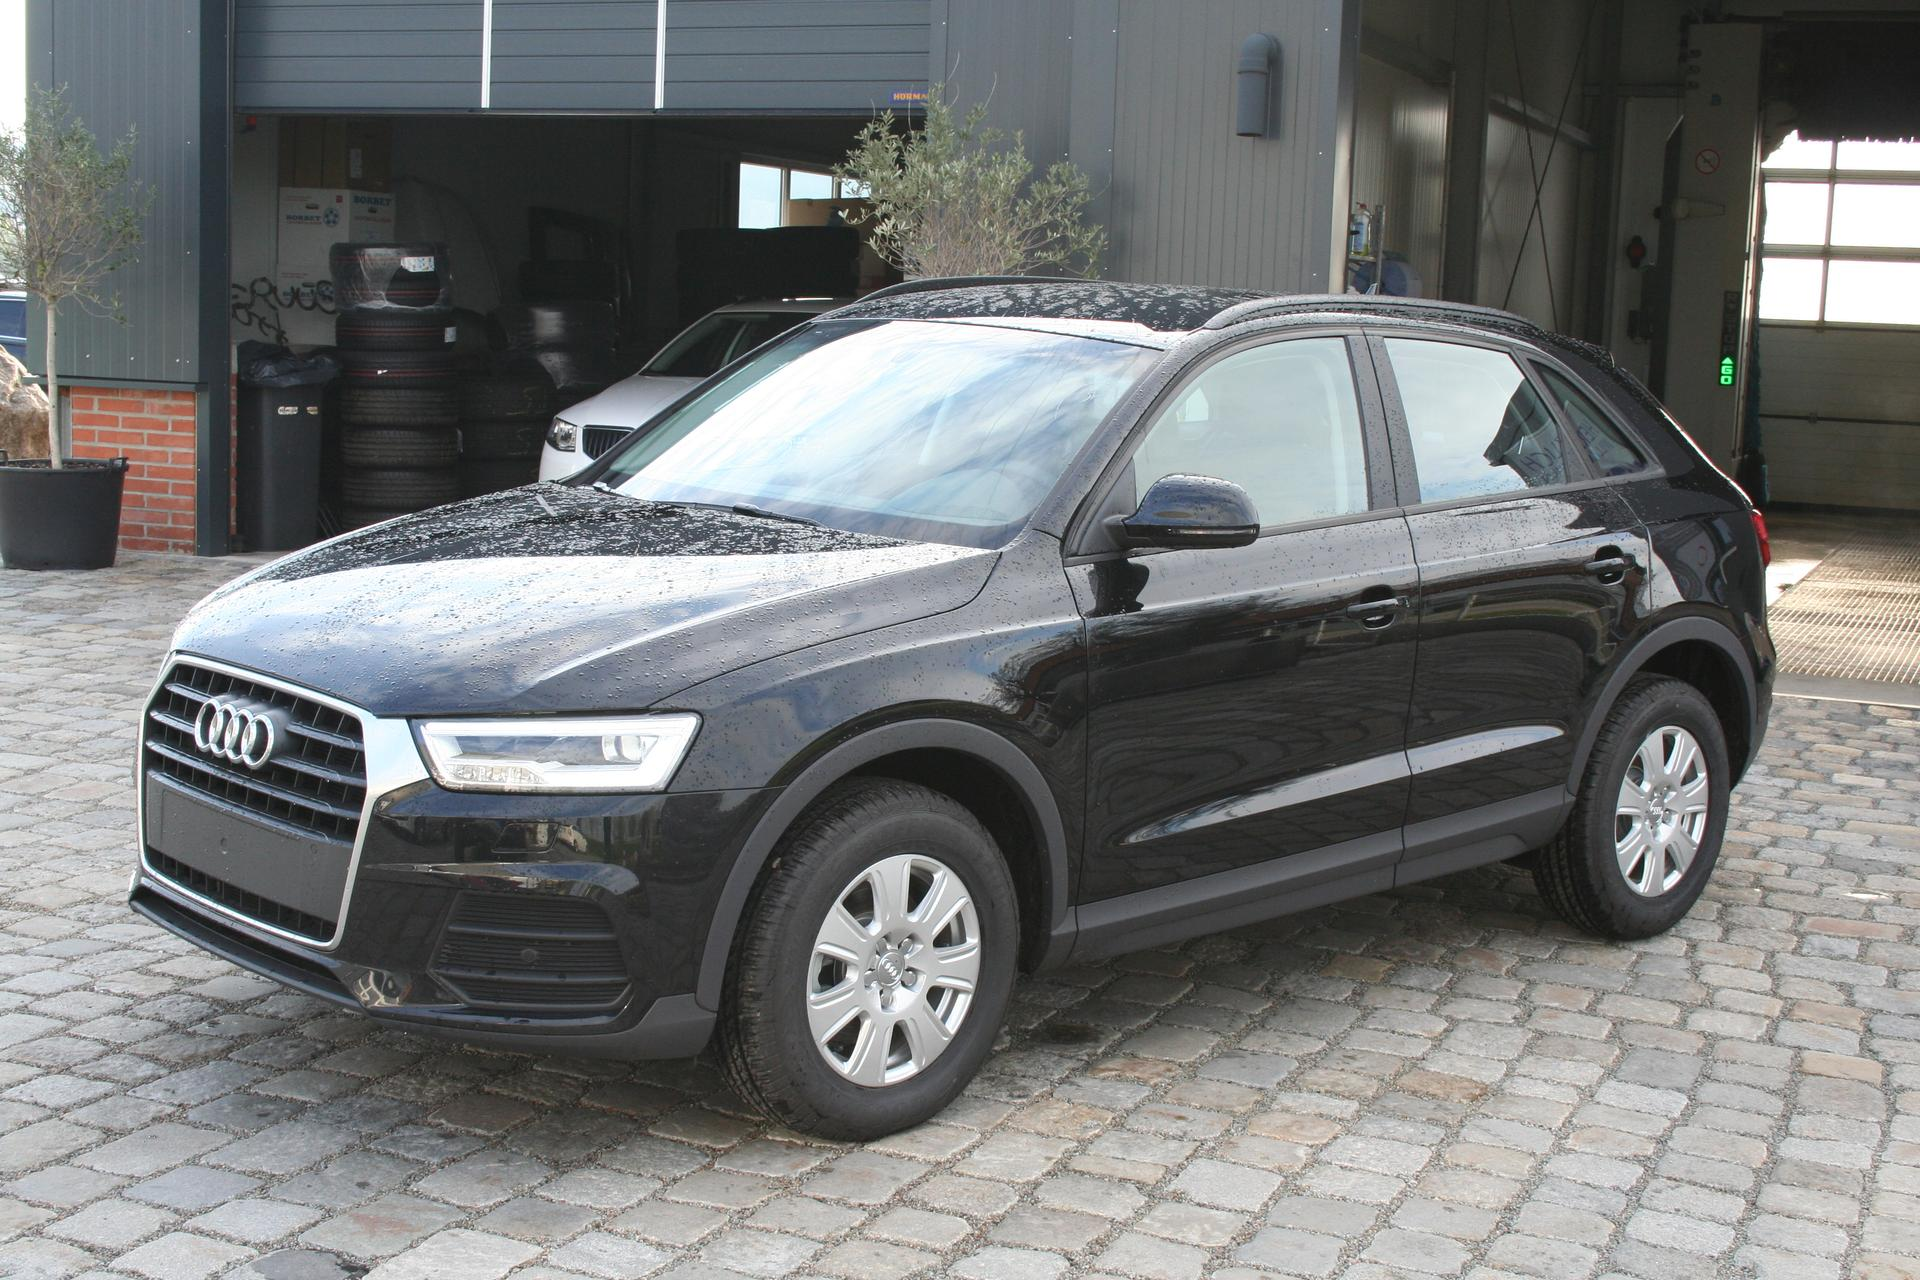 audi q3 1 4 tfsi s tronic 150 ps ledscheinwerfer 4jahregarantie el heckklappe connectivity. Black Bedroom Furniture Sets. Home Design Ideas